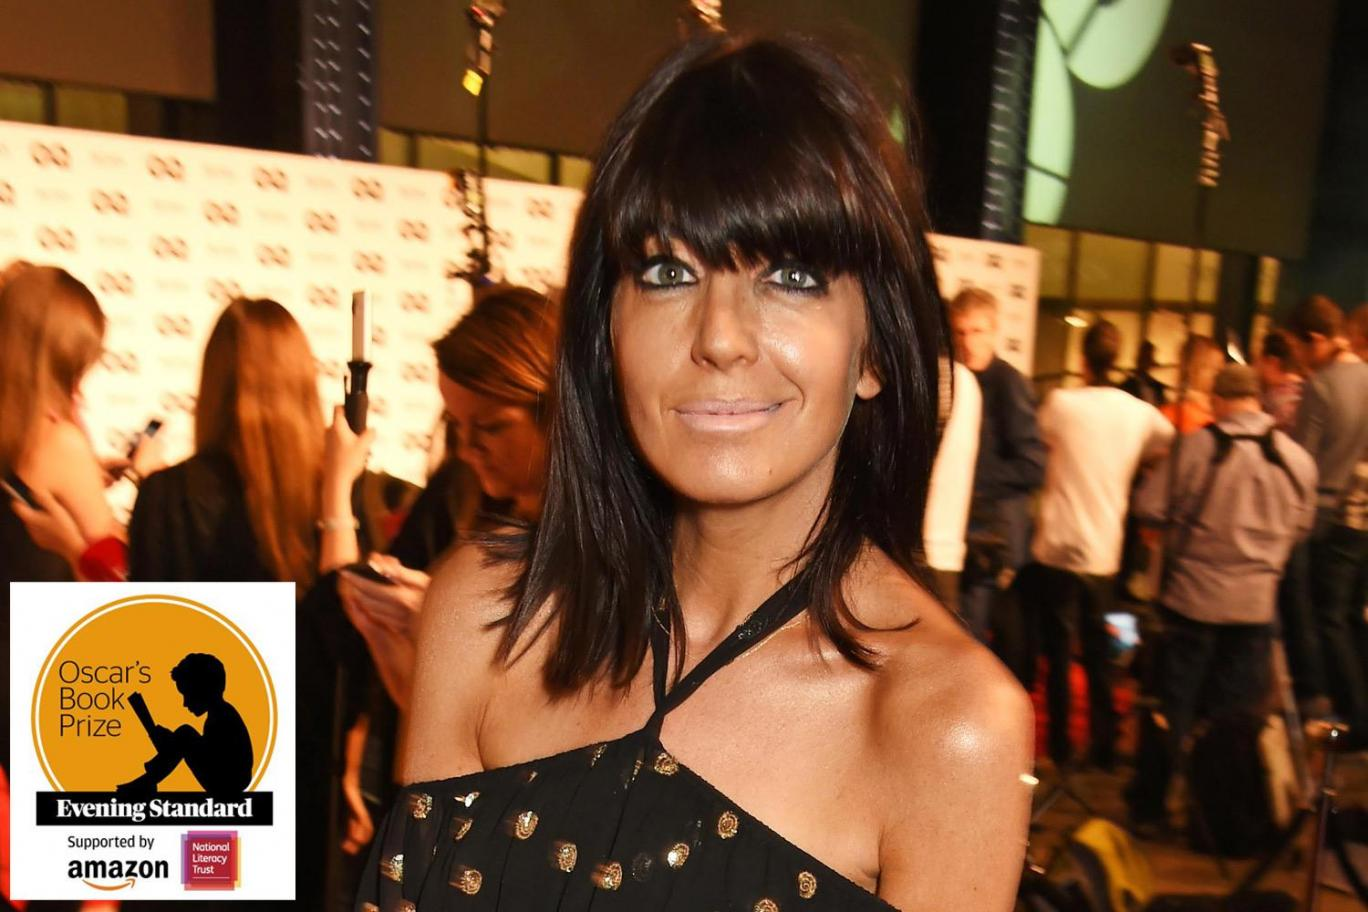 Claudia Winkleman, one of the judges for the 2017 Oscar's Book Prize. Photograph by Dave Benett